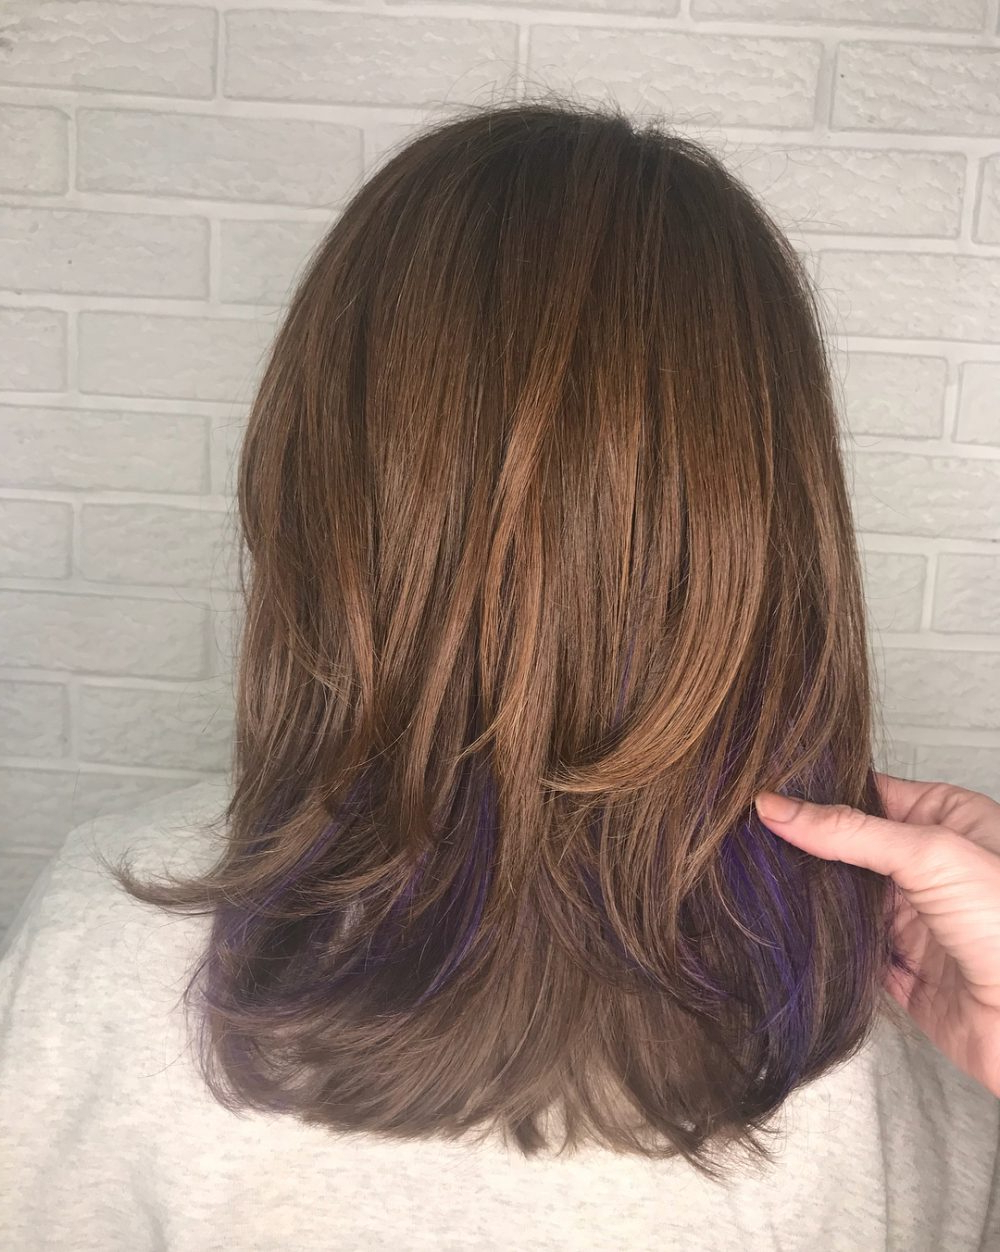 33 Cutest Peekaboo Highlights You'll Ever See In 2018 Intended For Extreme Angled Bob Haircuts With Pink Peek A Boos (View 11 of 20)